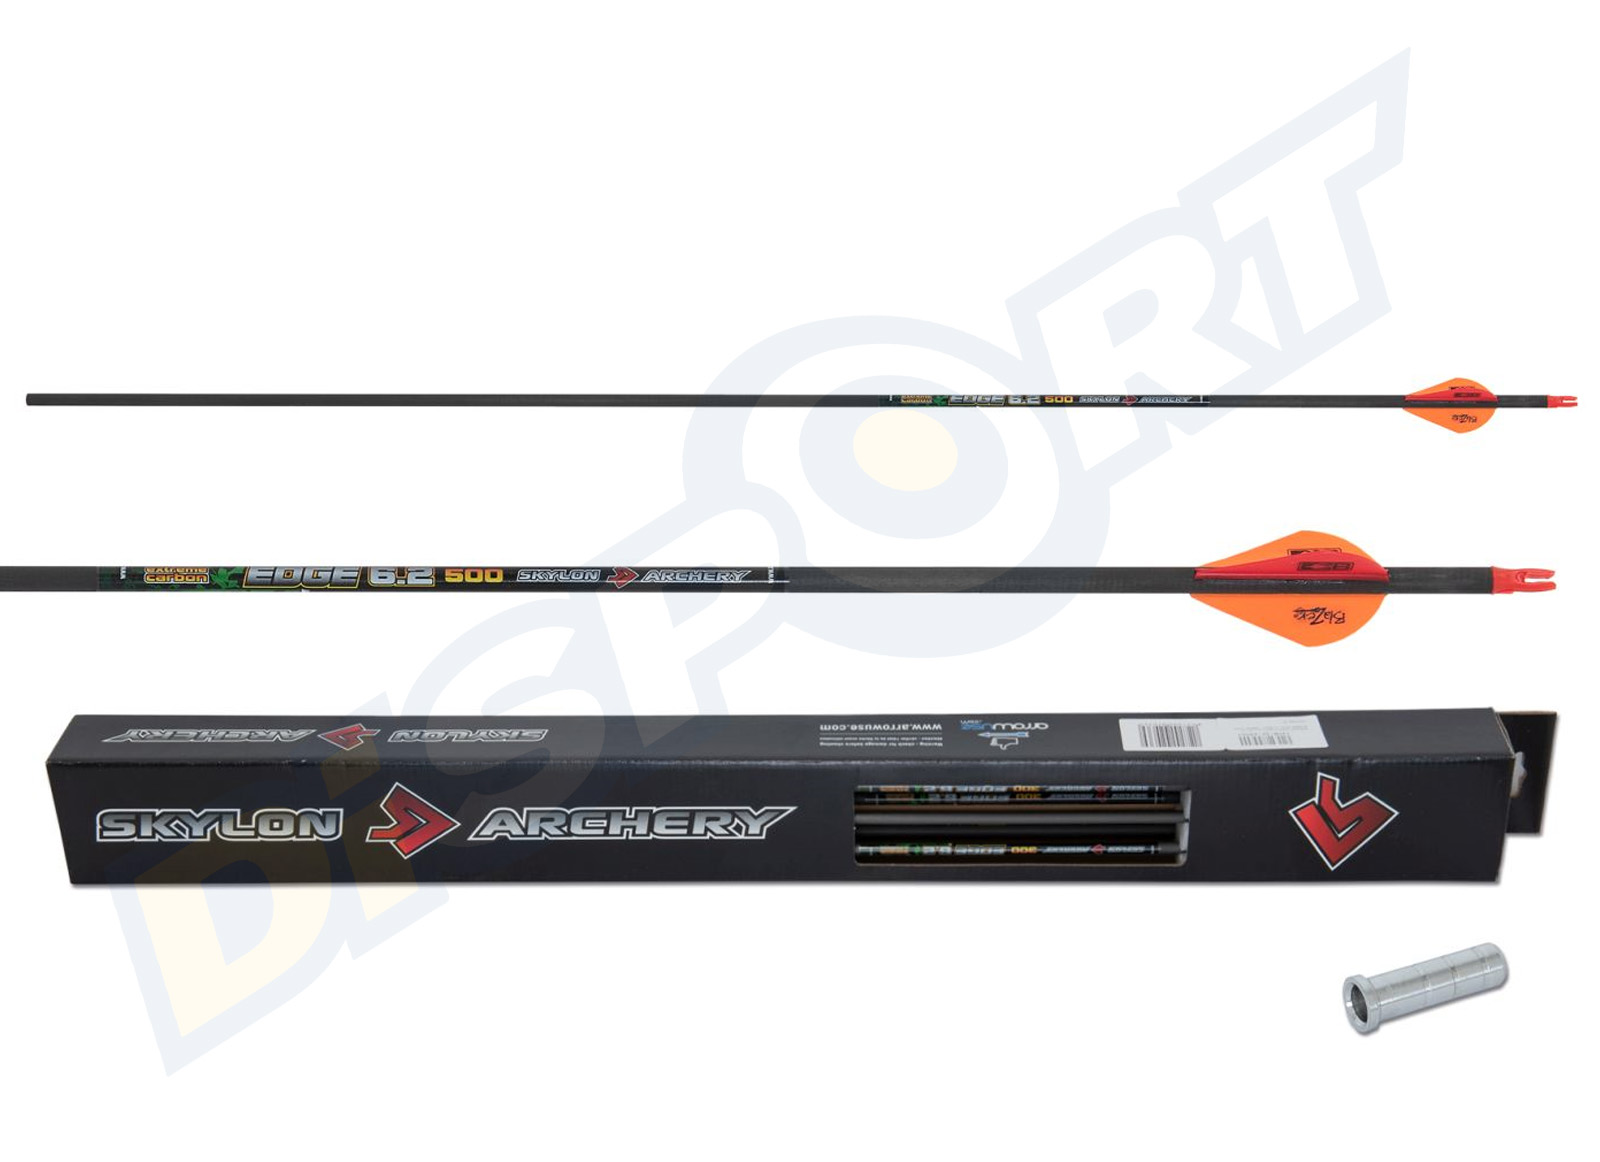 SKYLON ARROWS FRECCIA CARBON EDGE